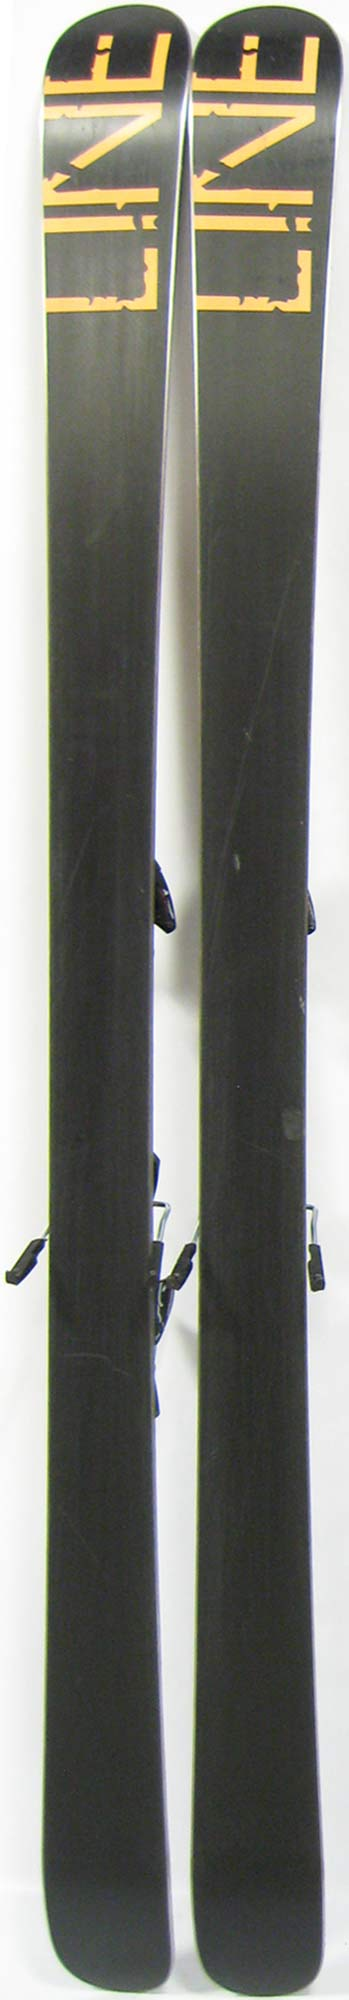 Bases of 2012 Line Prophet Flite Skis For Sale